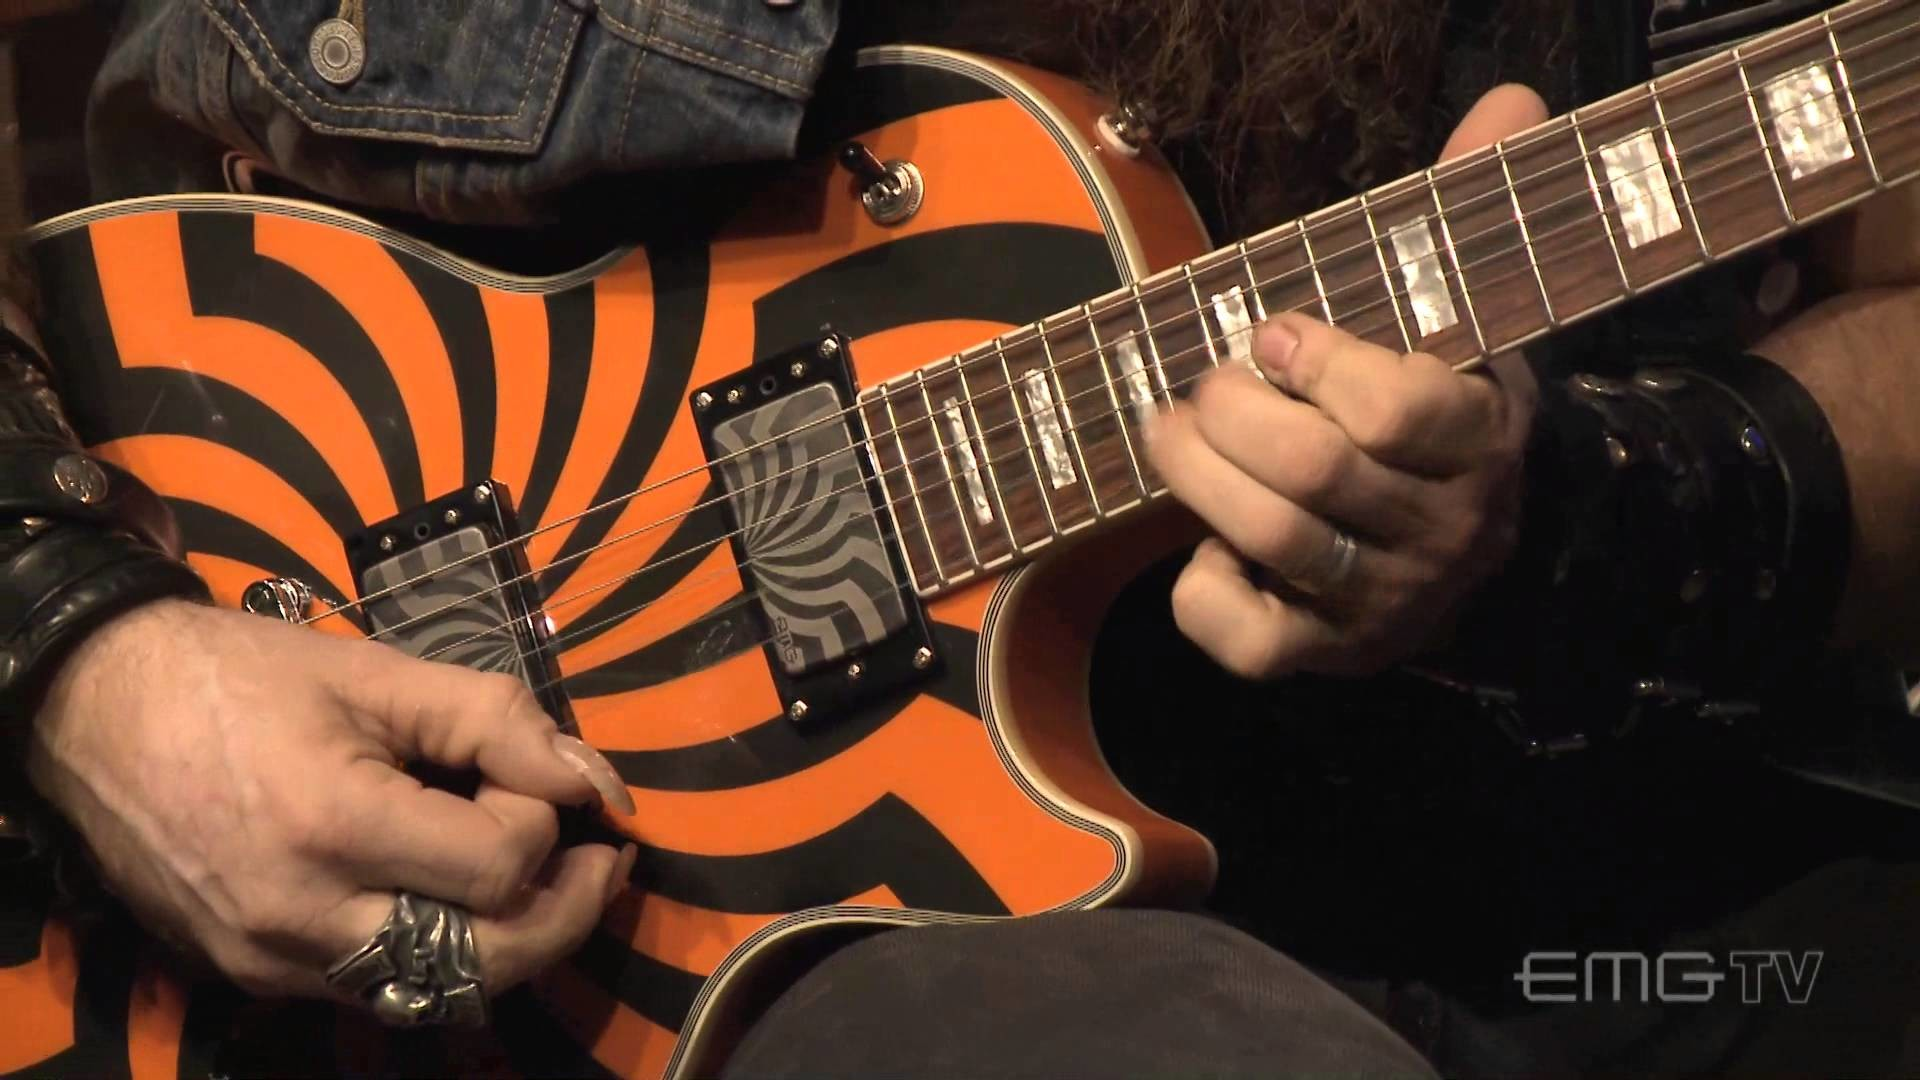 1920x1080 Zakk Wylde rips amazing guitar solo over Andy James track, EMGtv - YouTube